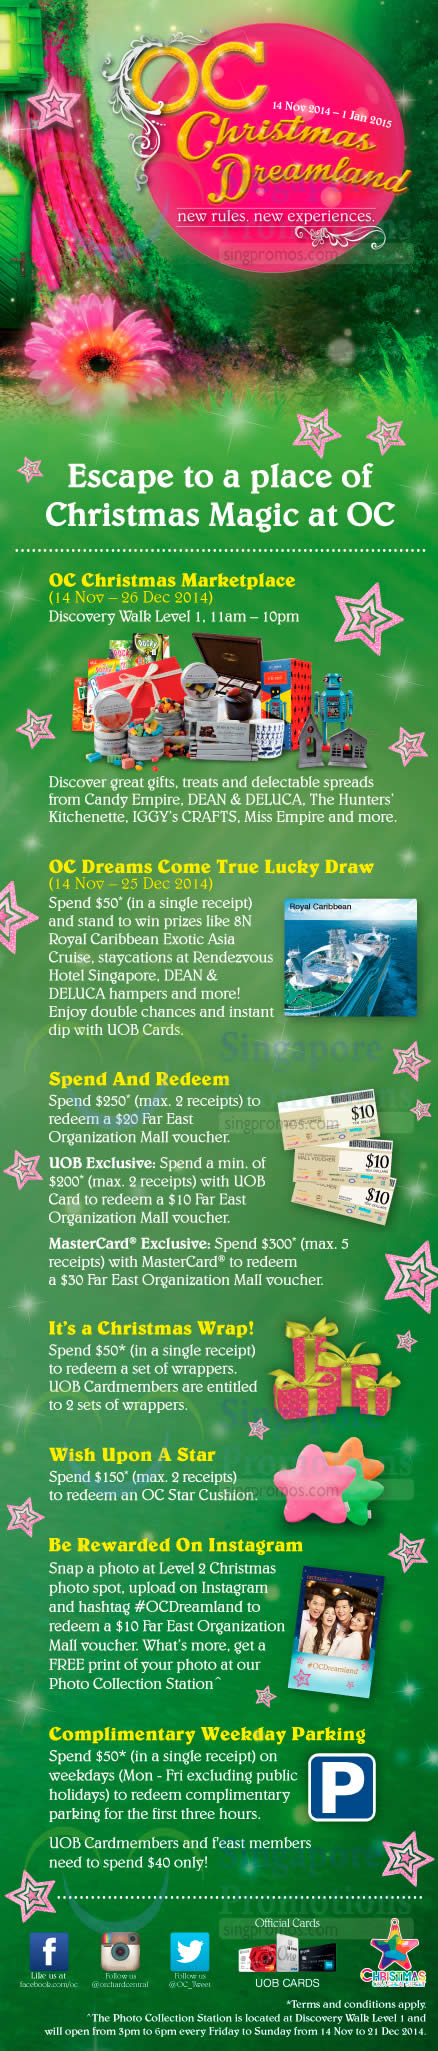 Lucky Draw, Spend n Redeem, Christmas Wrap, Weekday Parking